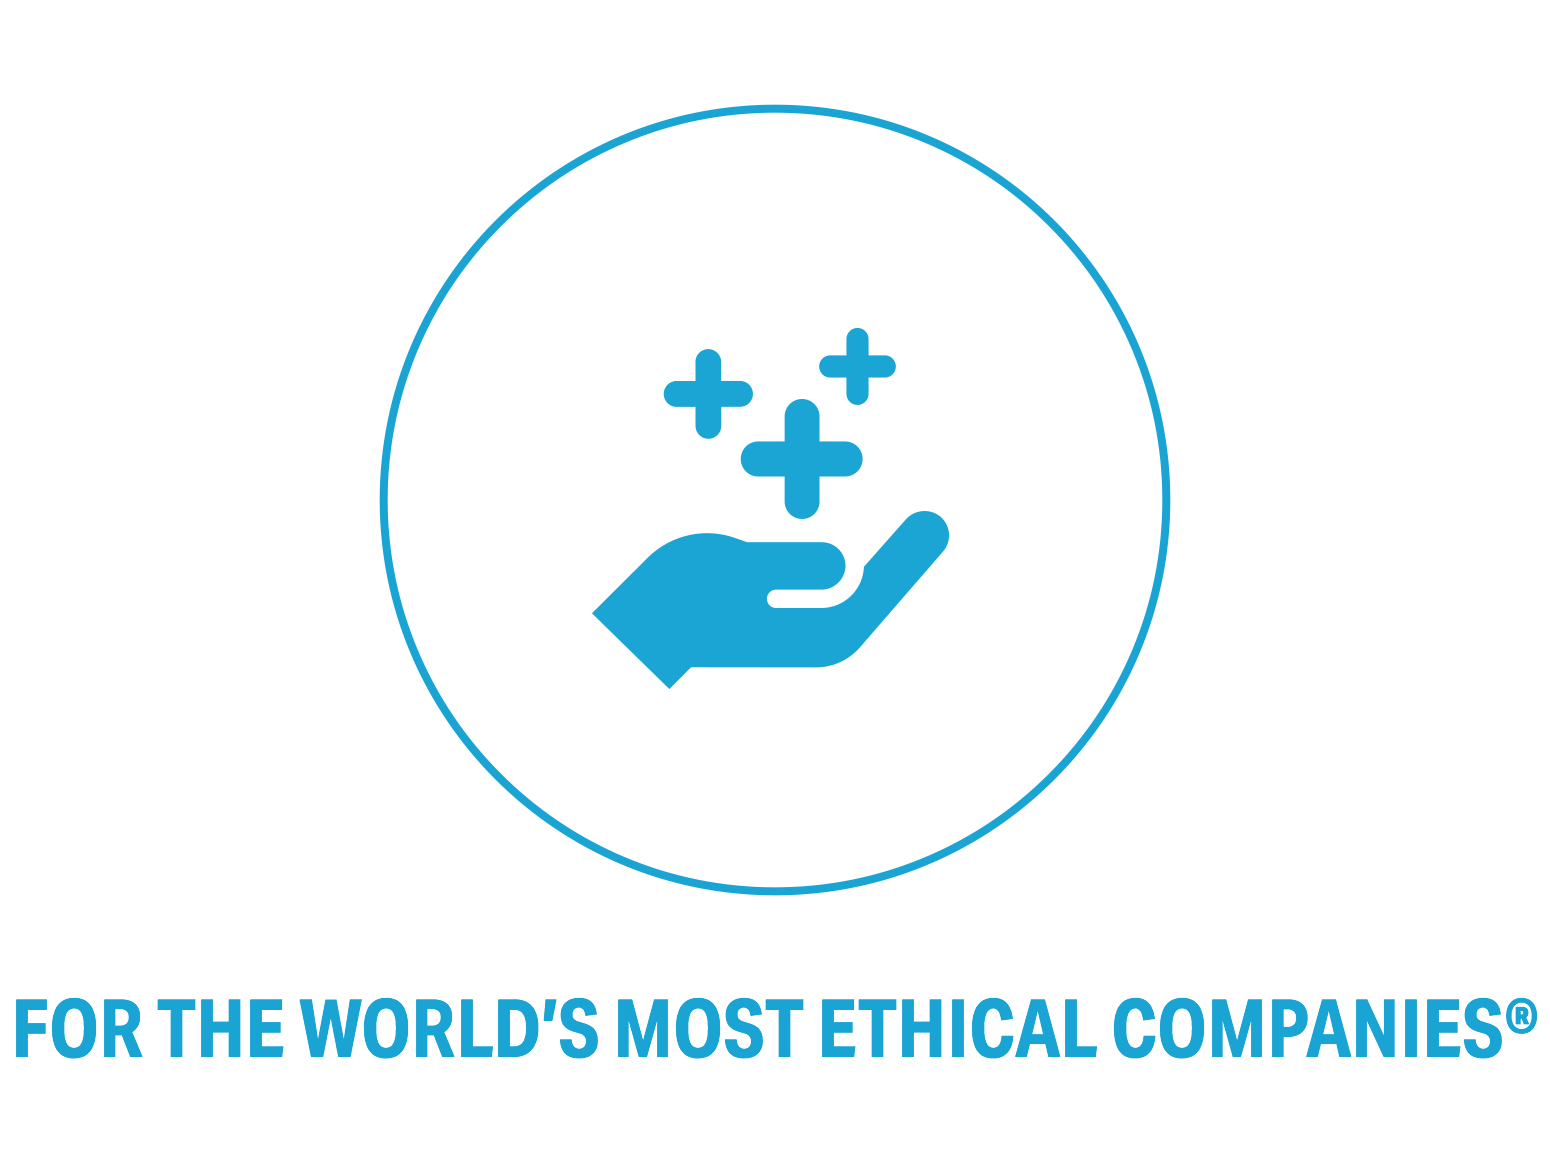 For The World Most Ethical Companies